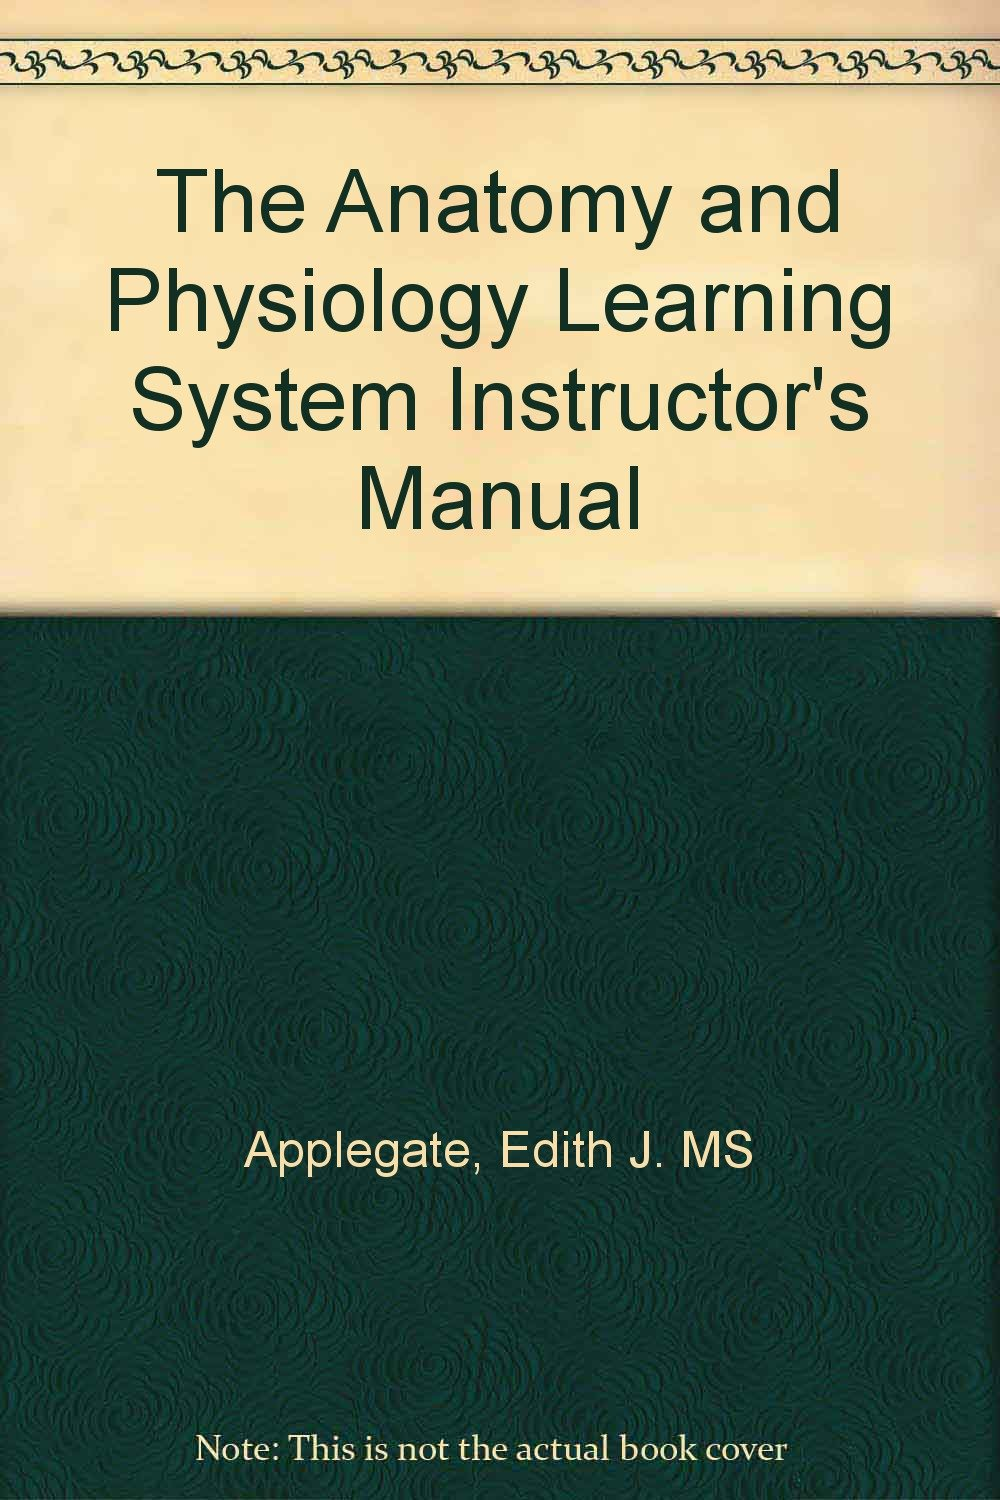 The Anatomy and Physiology Learning System Instructors Manual ...